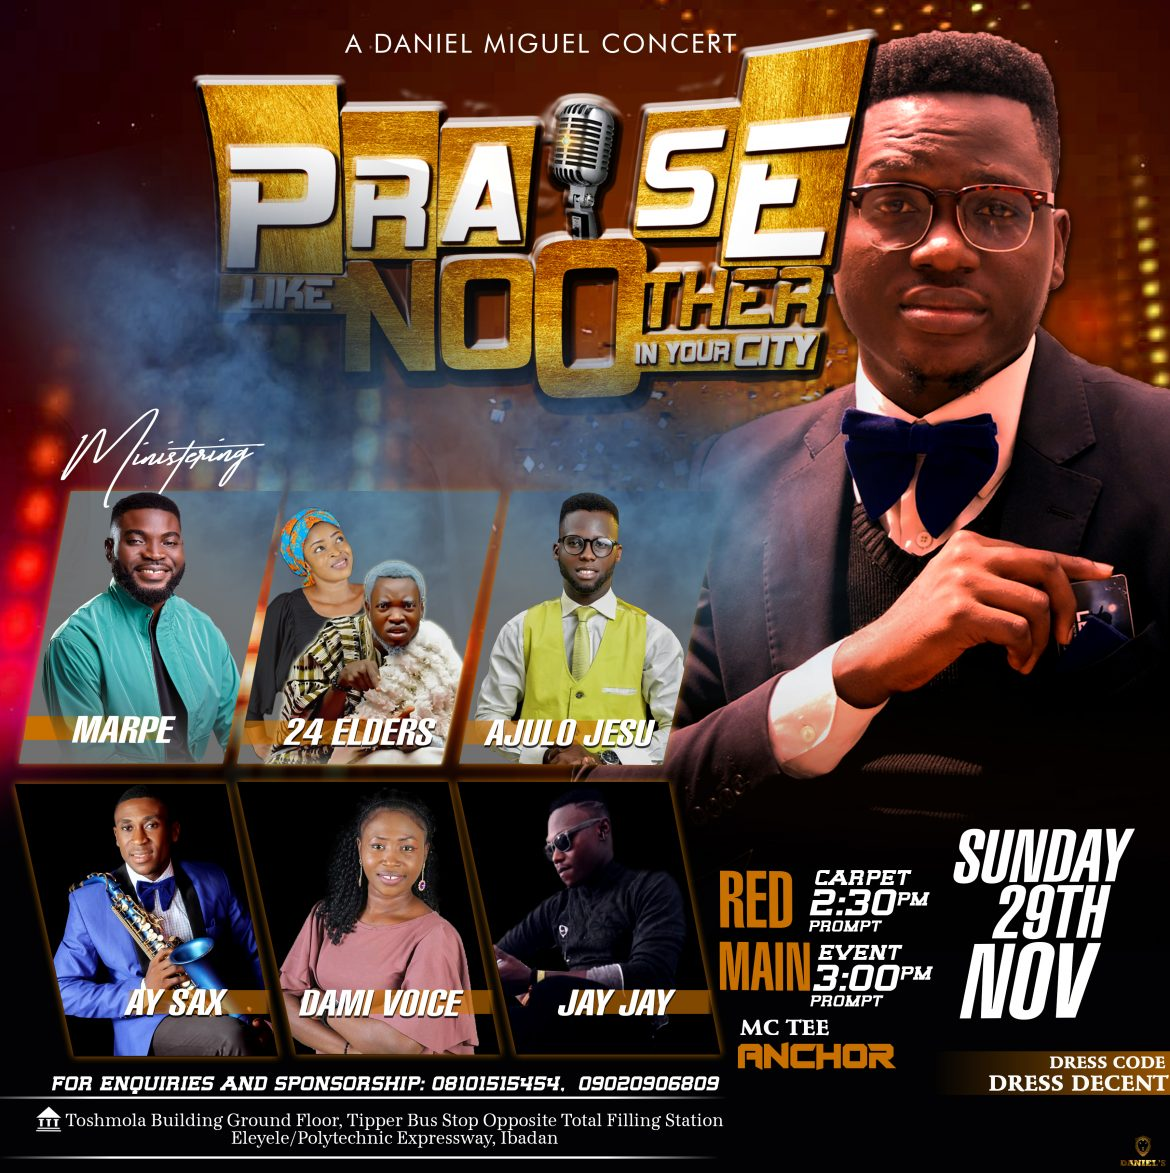 Ibadan are you ready? Praise like No Other in Ibadan City with Daniel Miguel